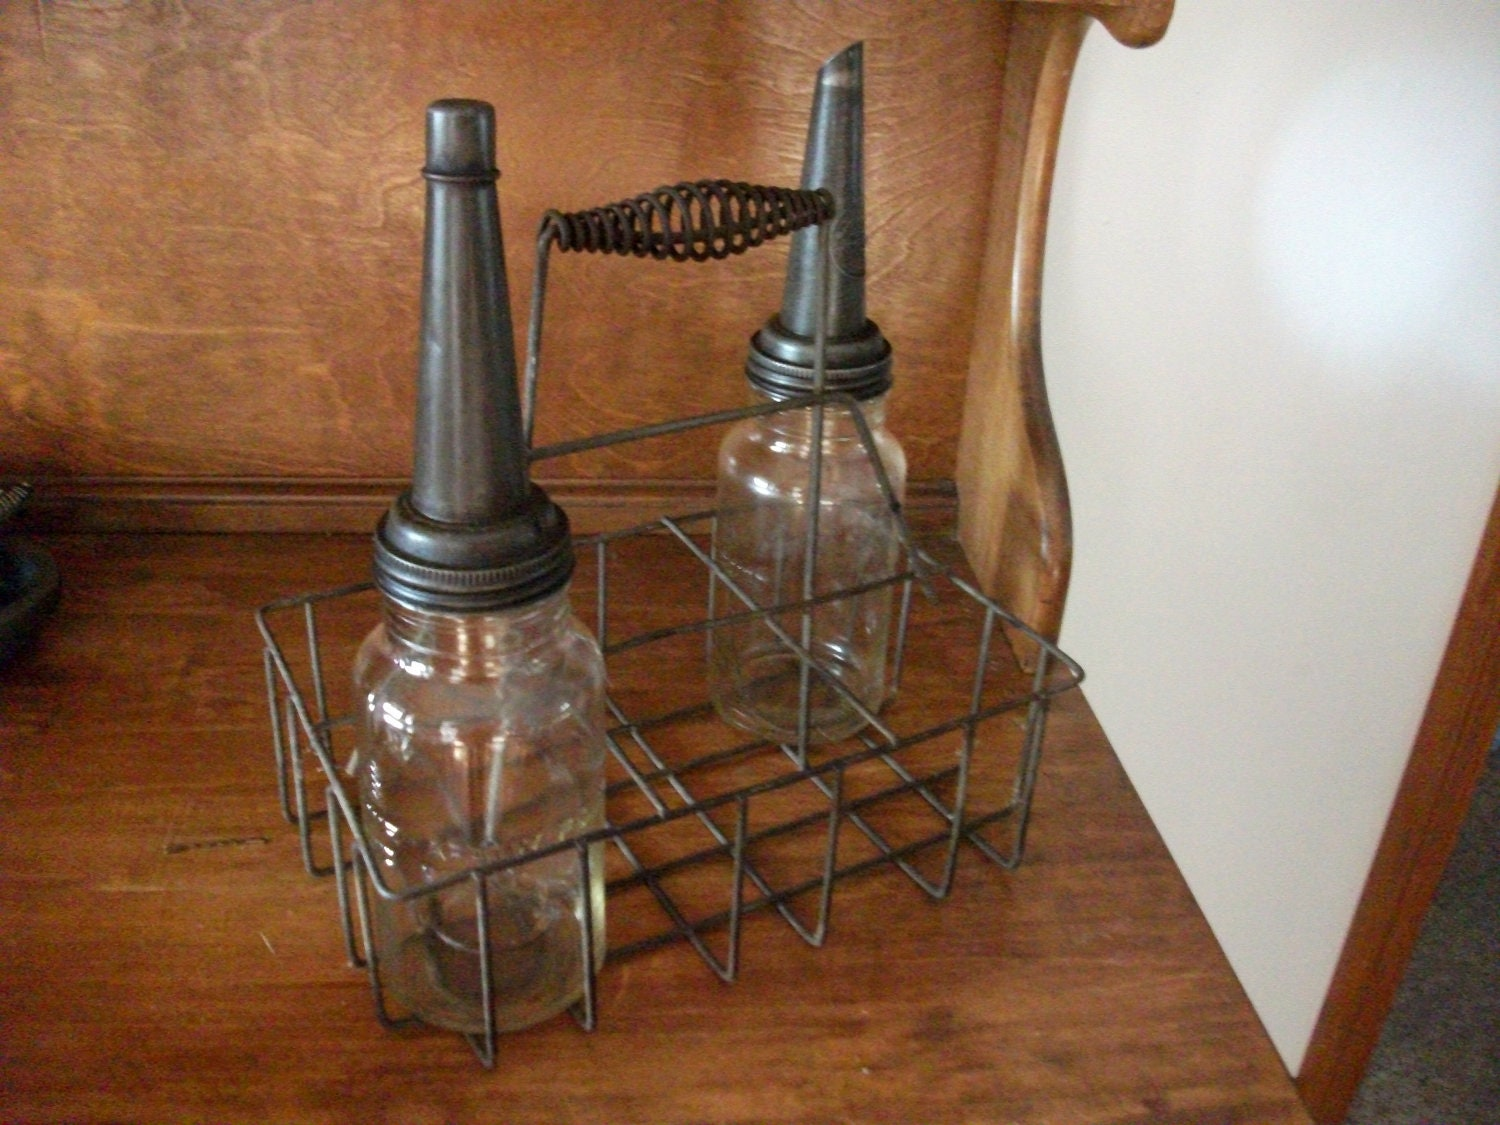 Antique Motor Oil Bottles And Crate With The Master Spout